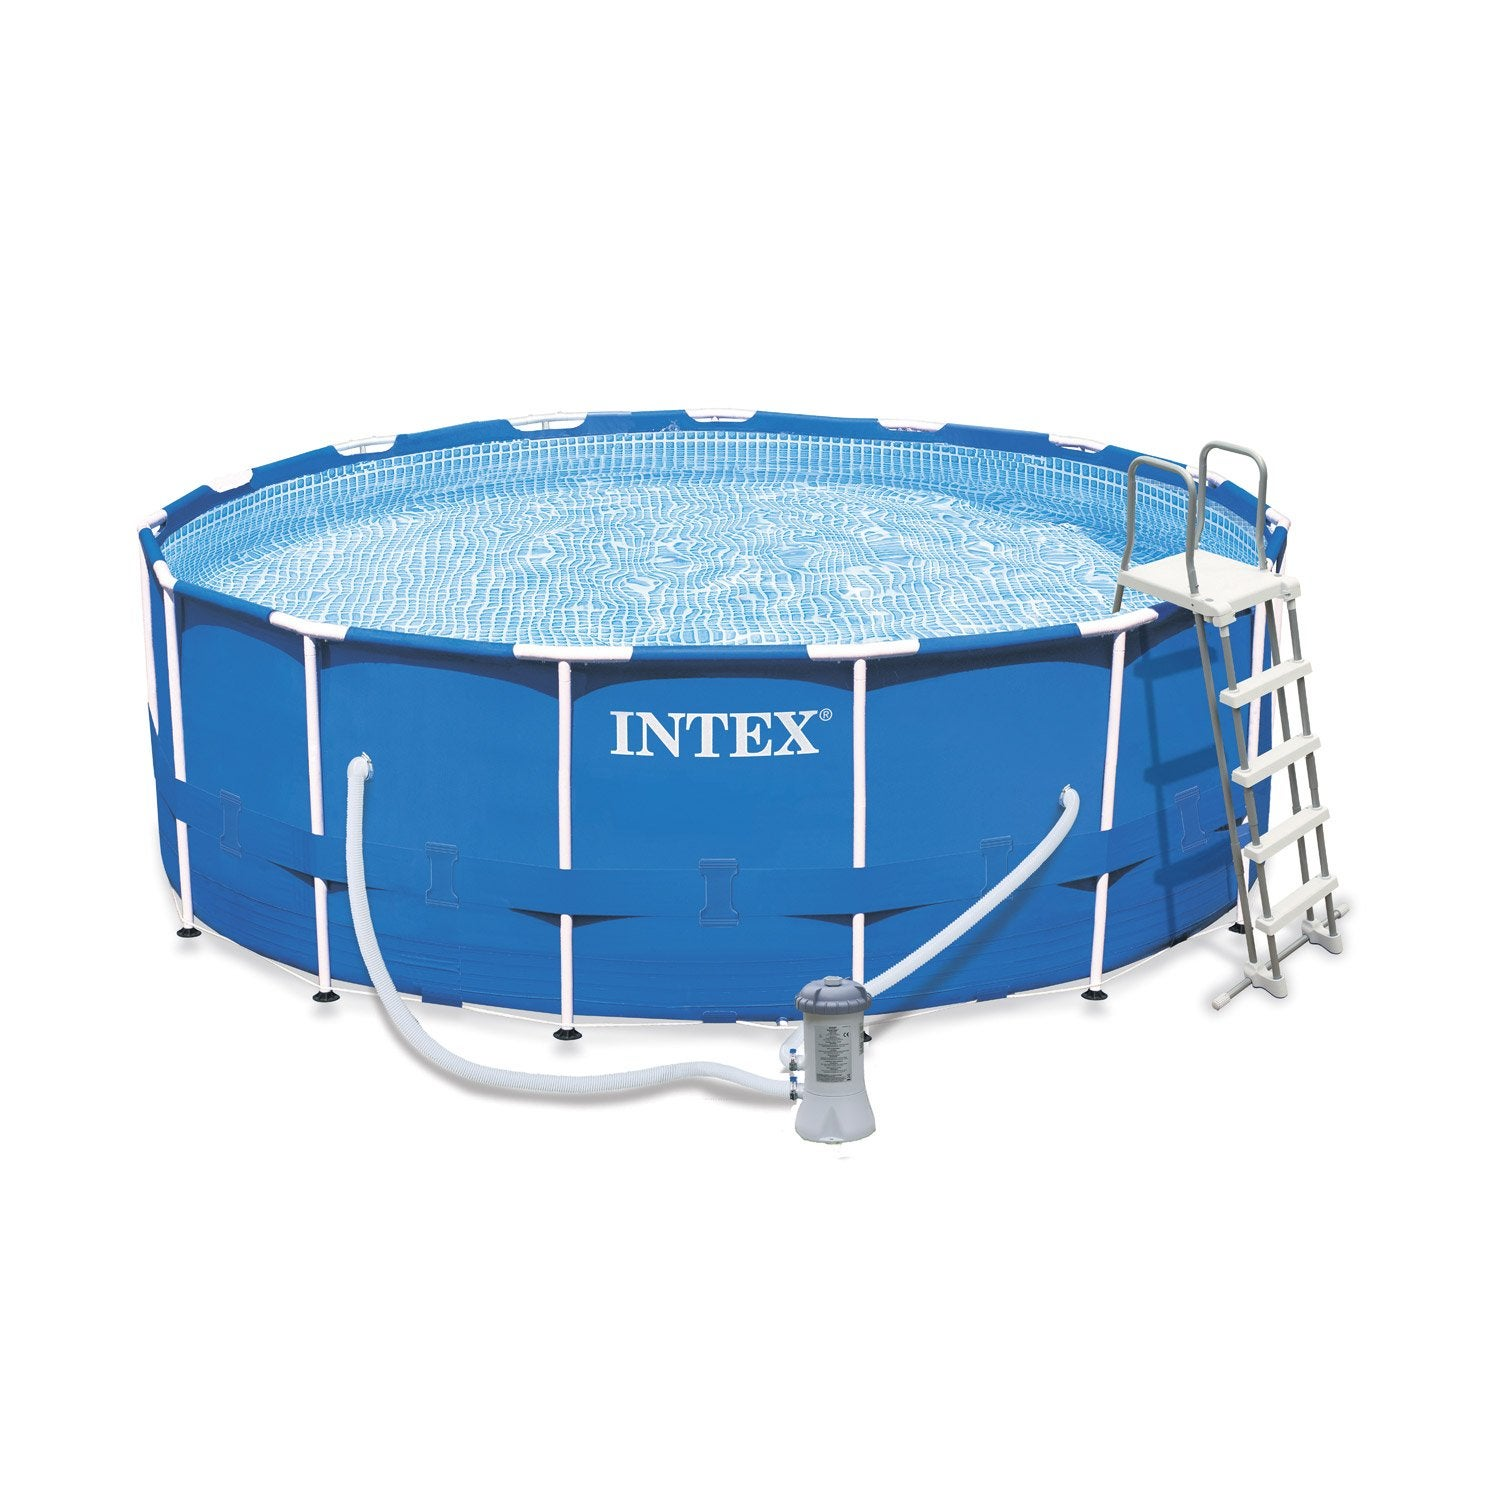 Piscine hors sol autoportante tubulaire metal frame intex for Piscine hors sol 7 x 4